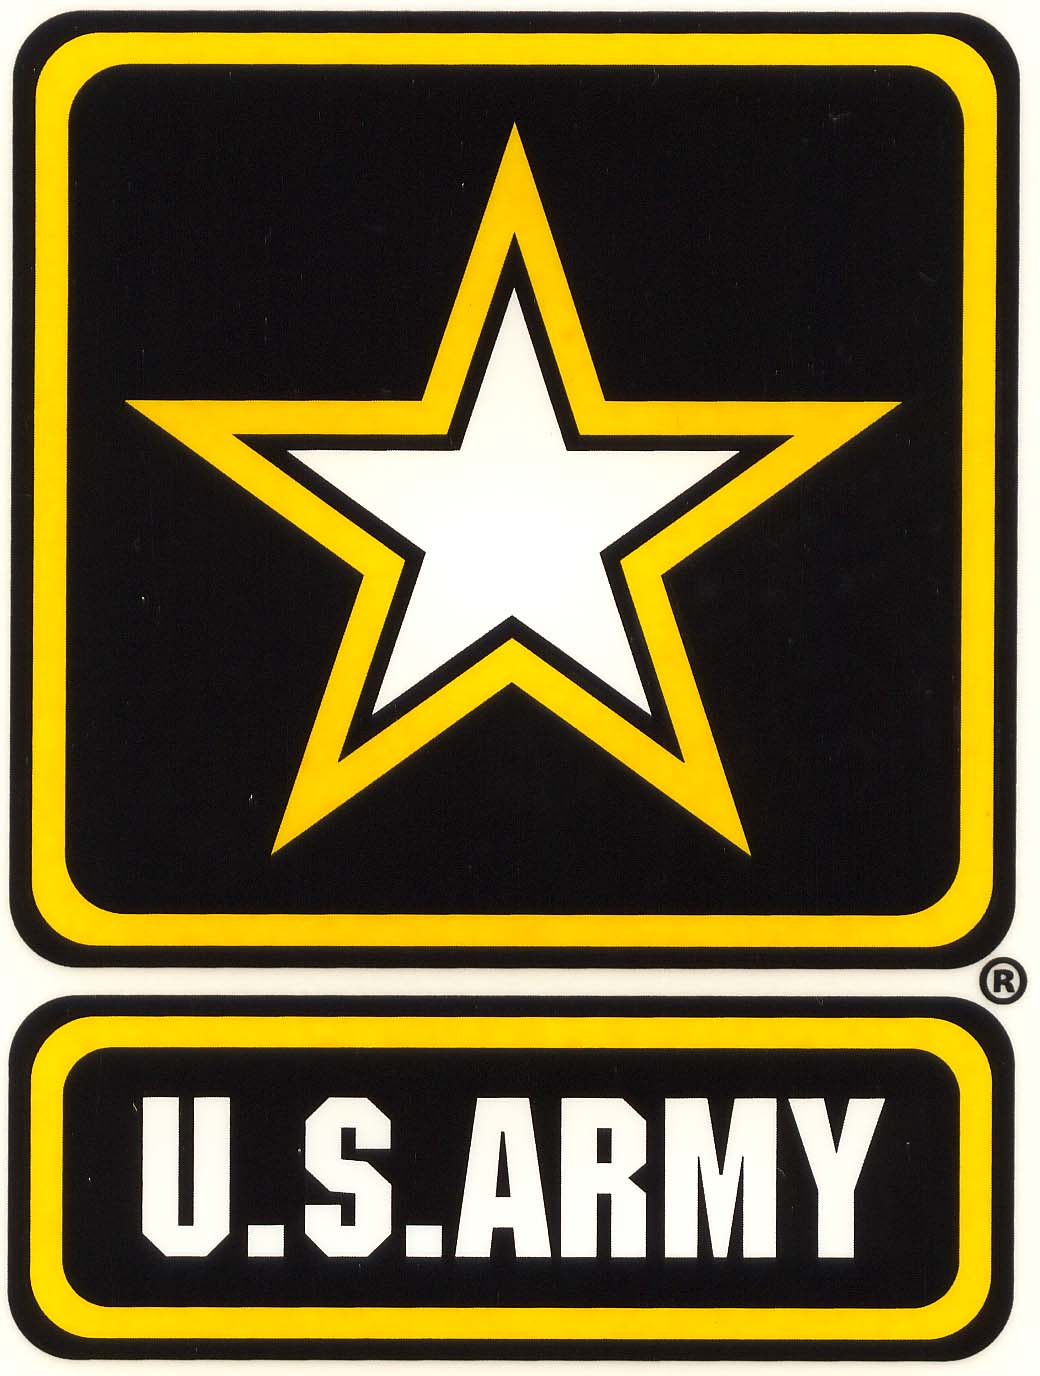 Army clipart #4, Download drawings